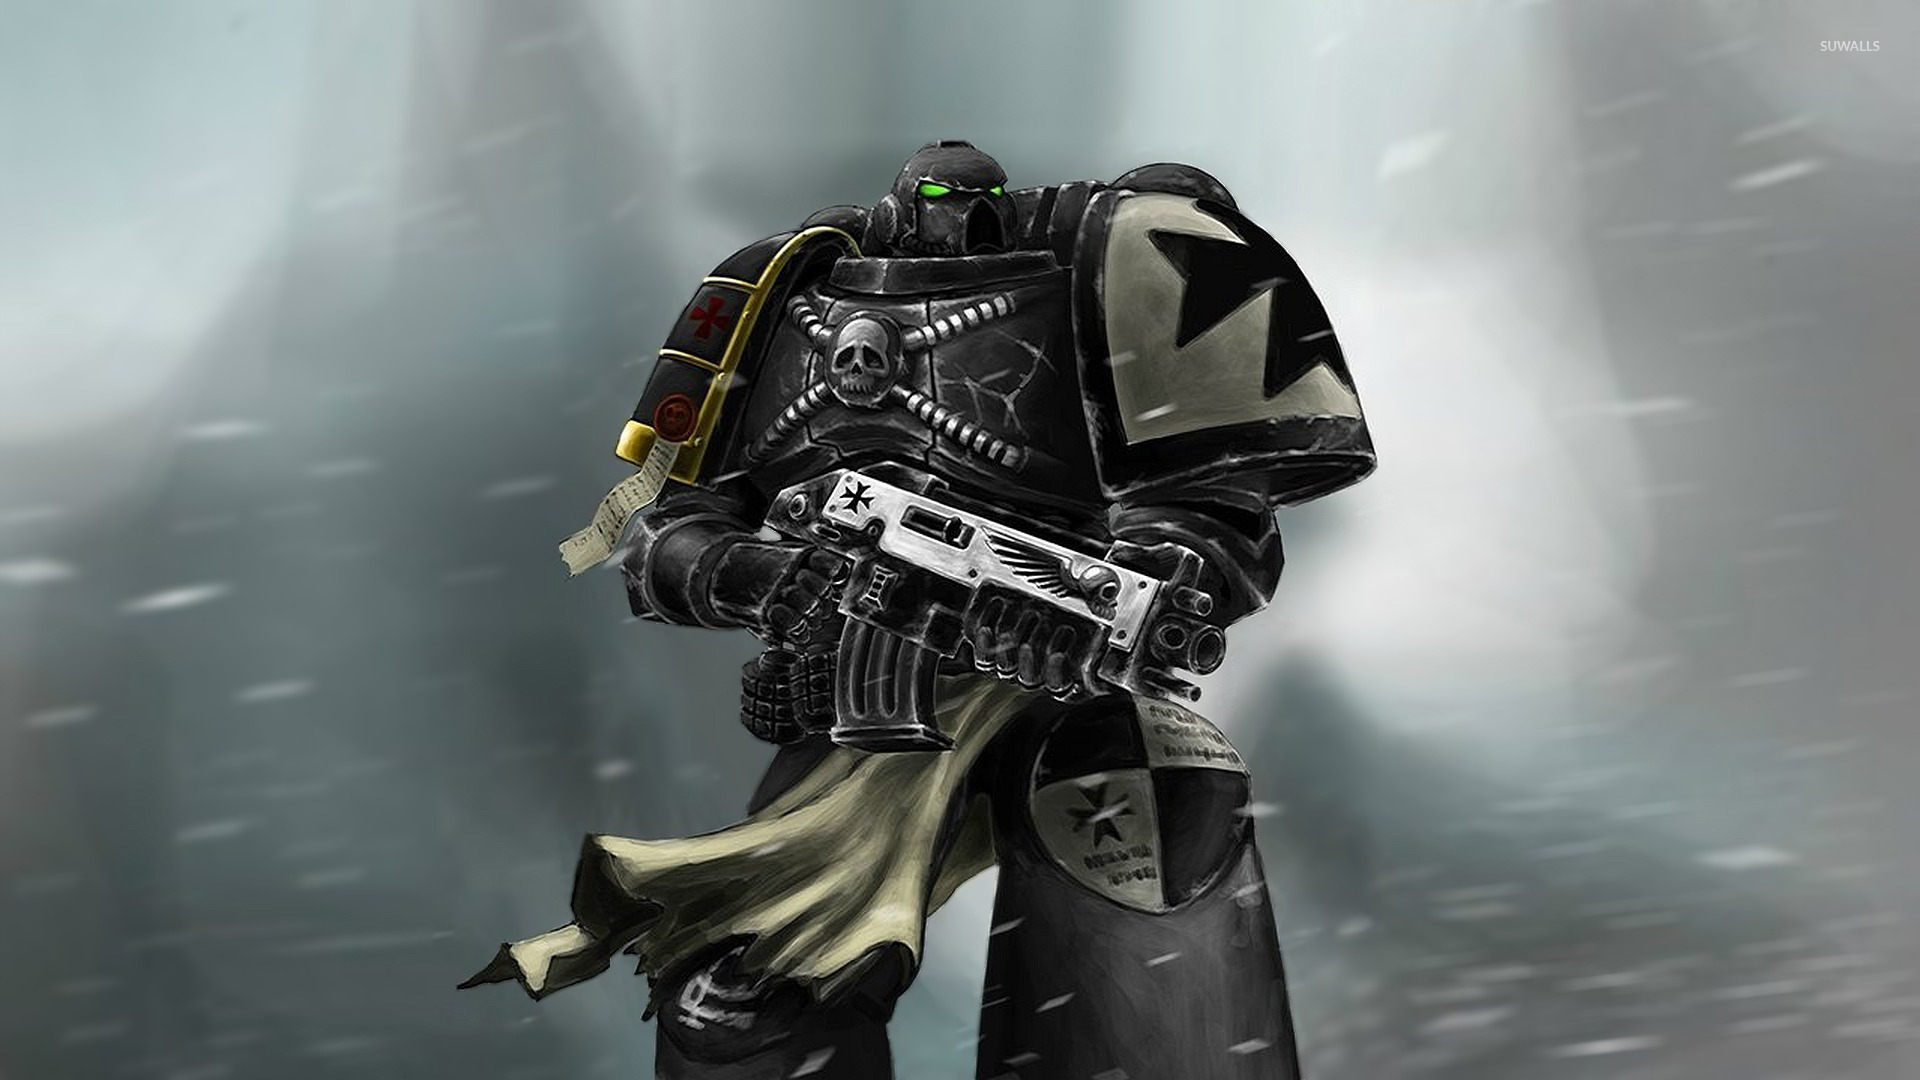 49 Black Templars Wallpaper On Wallpapersafari